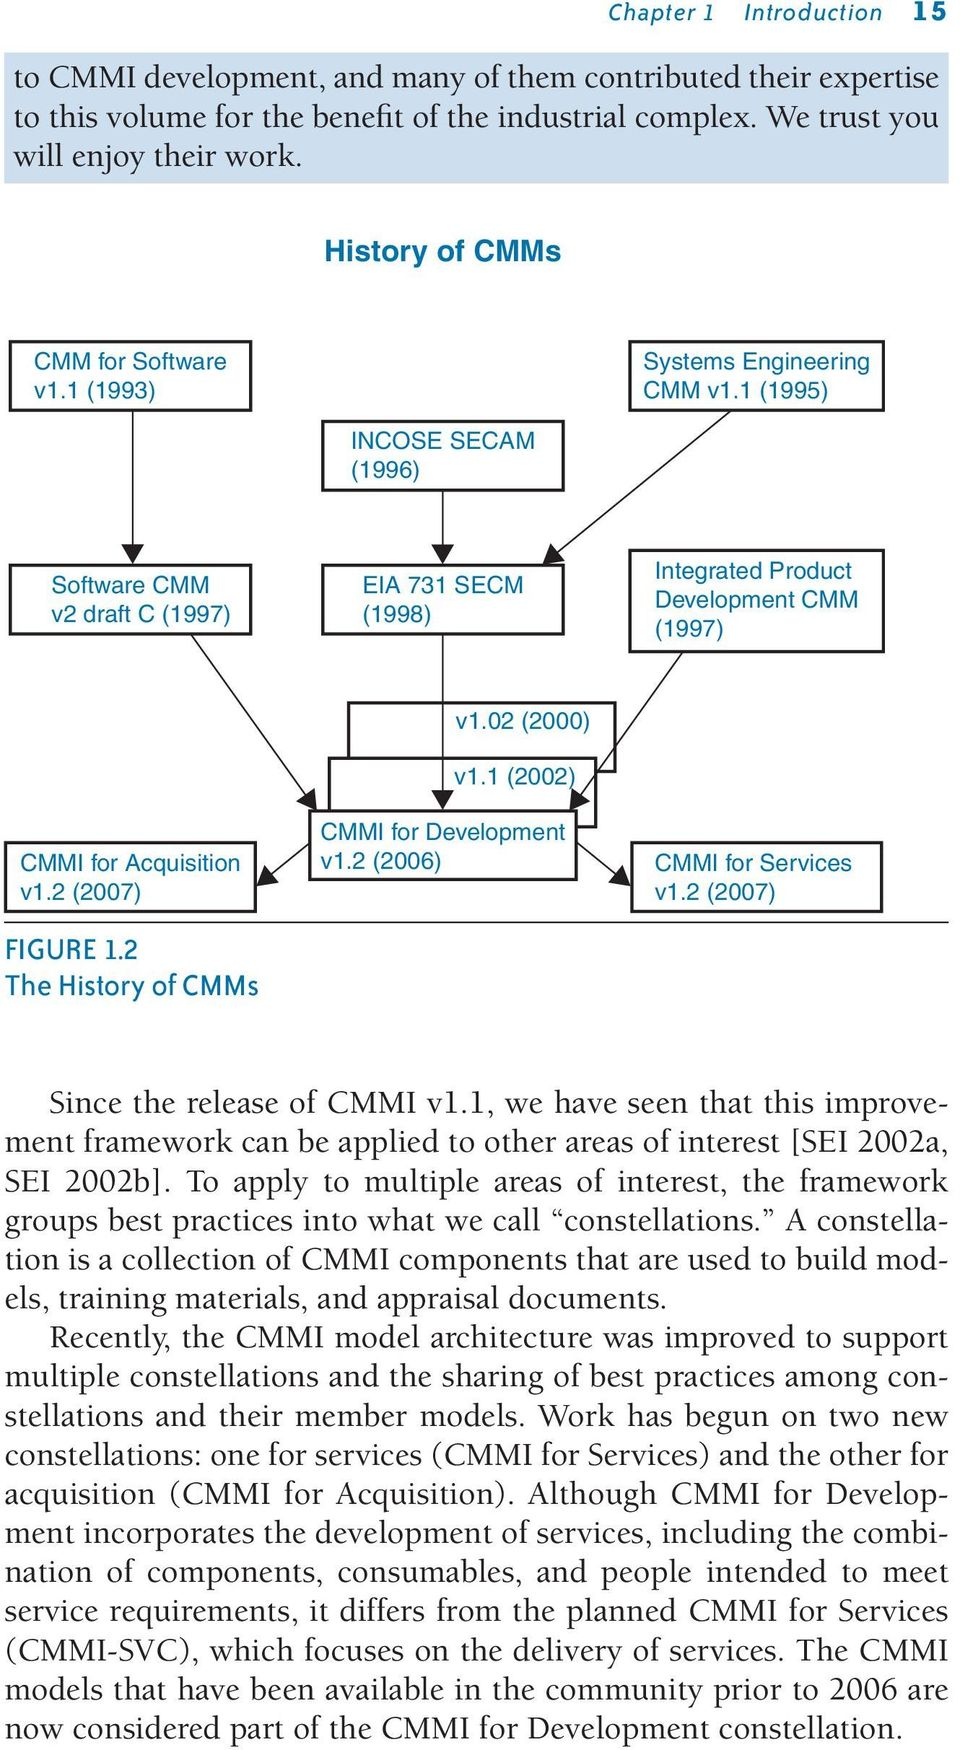 1 (1995) INCOSE SECAM (1996) Software CMM v2 draft C (1997) EIA 731 SECM (1998) Integrated Product Development CMM (1997) CMMI for Acquisition v1.2 (2007) FIGURE 1.2 The History of CMMs v1.